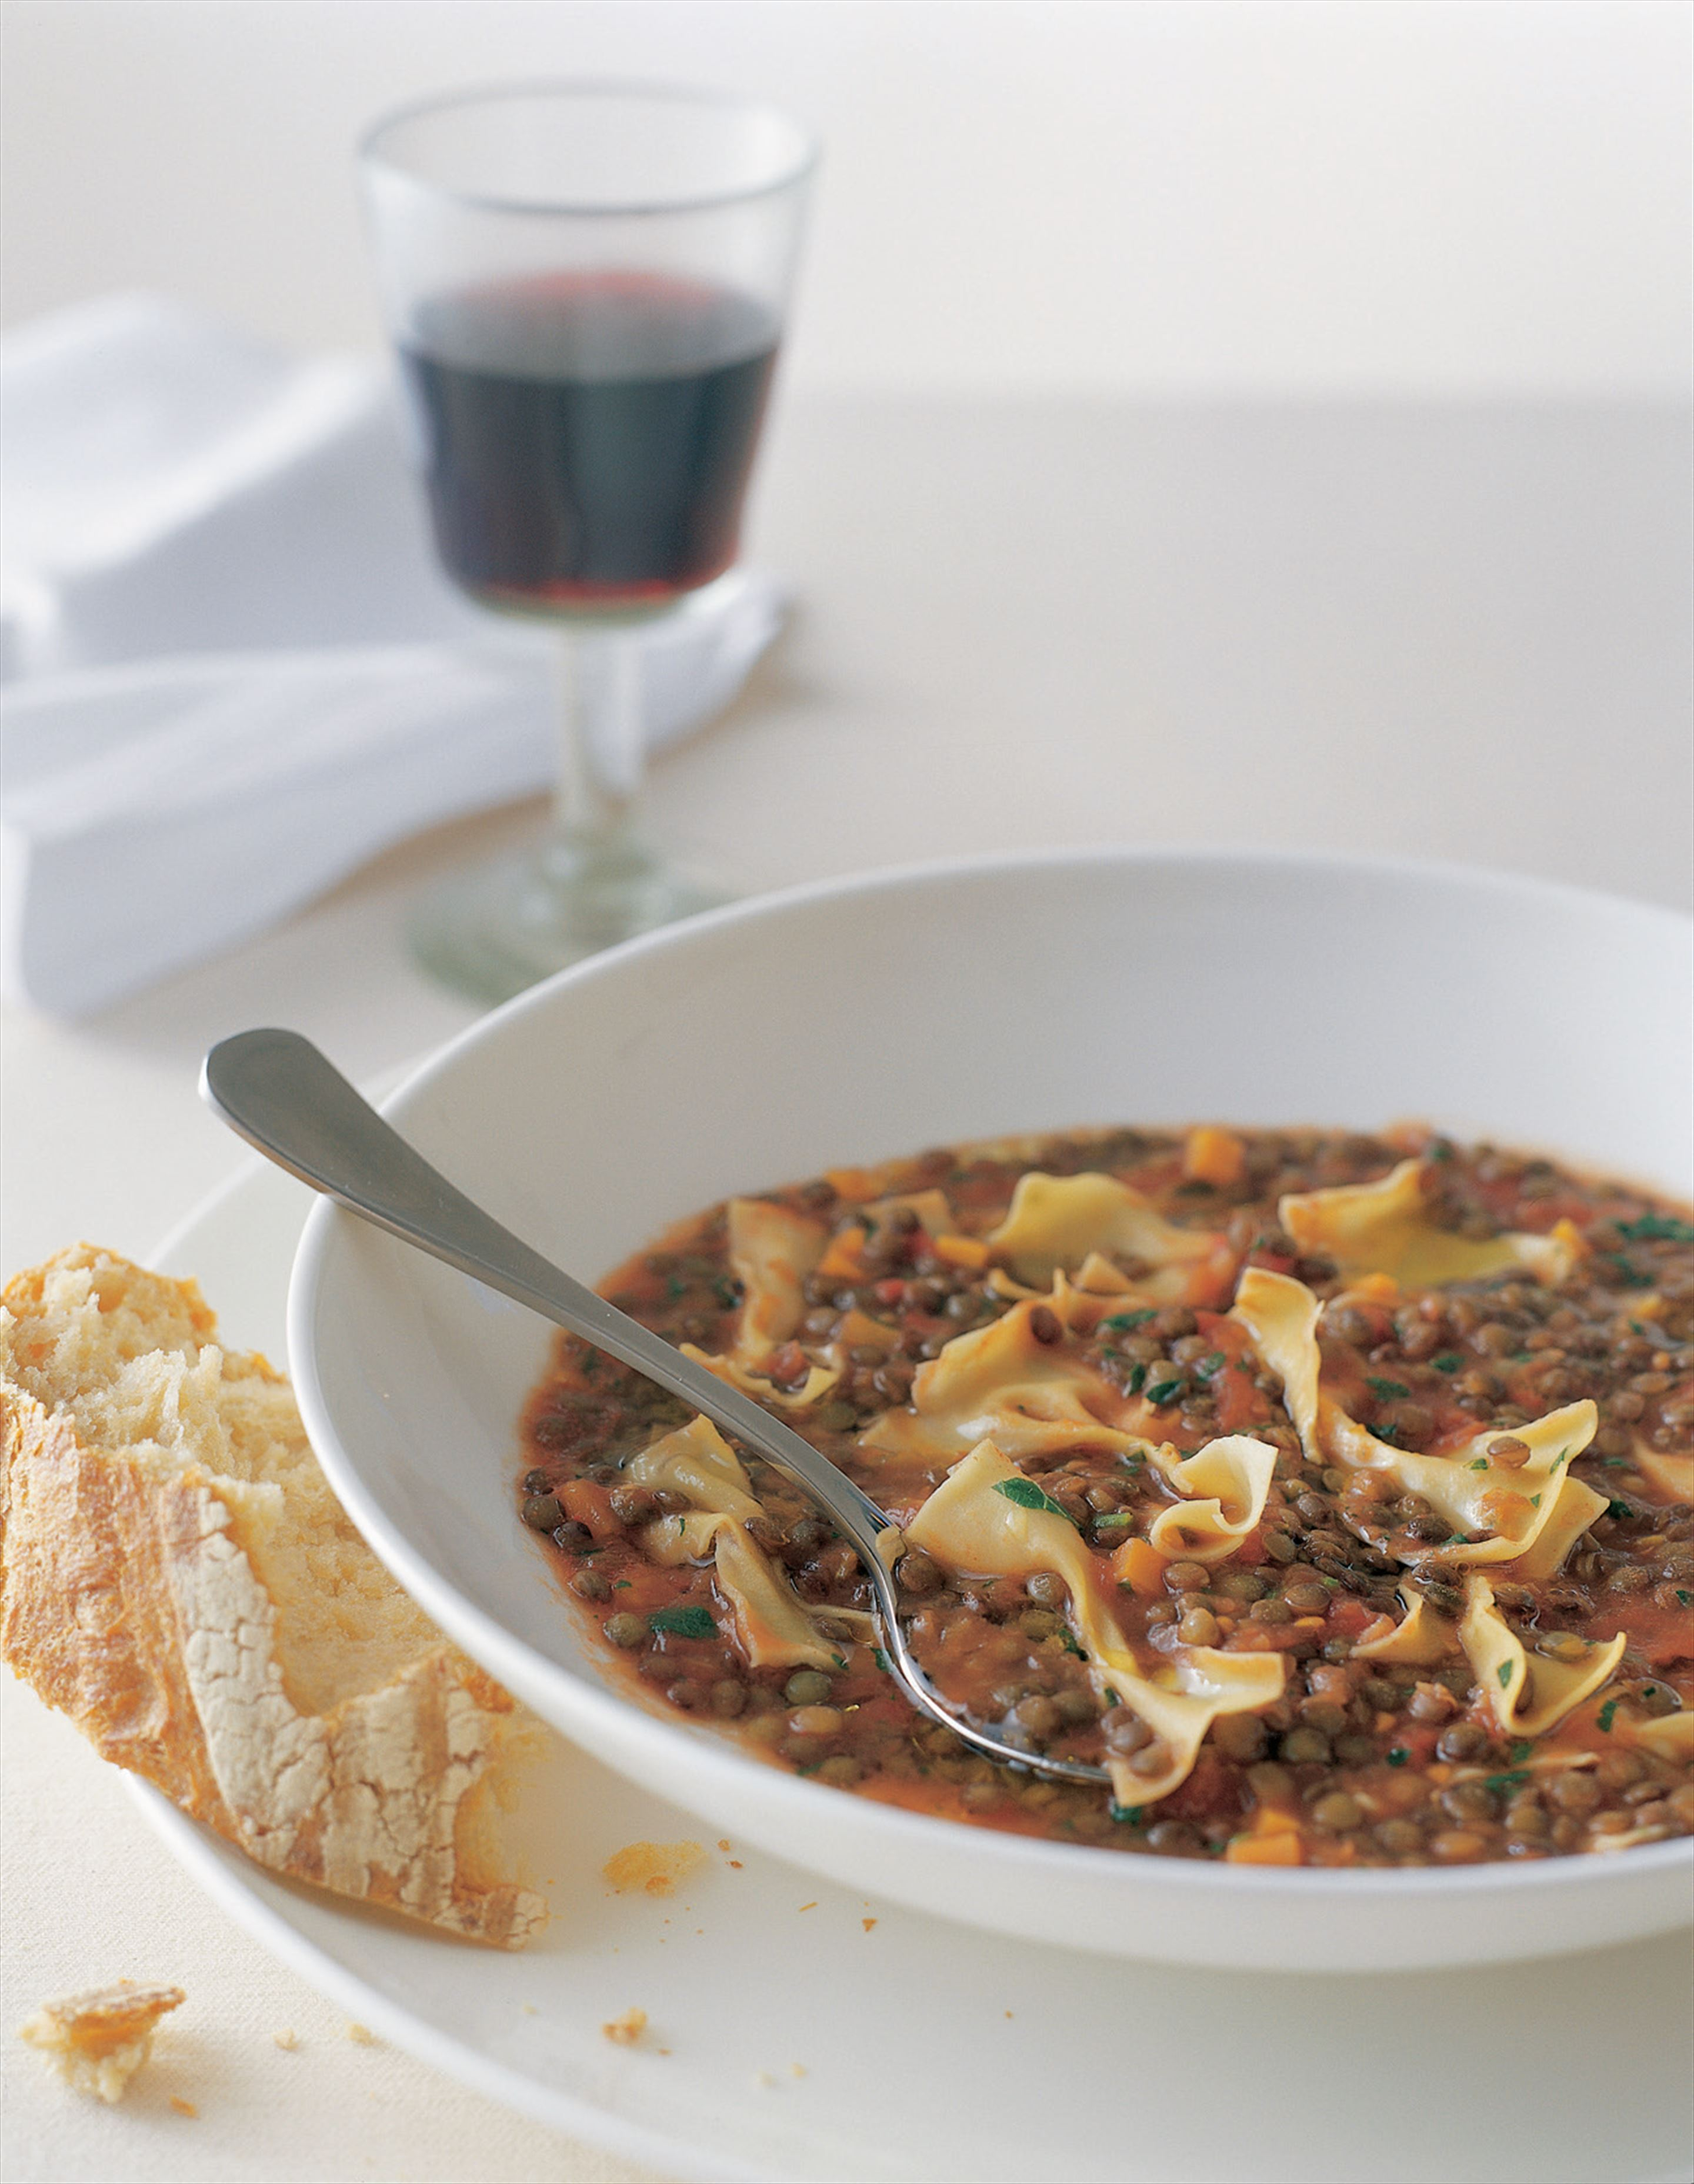 Pasta butterflies with lentils